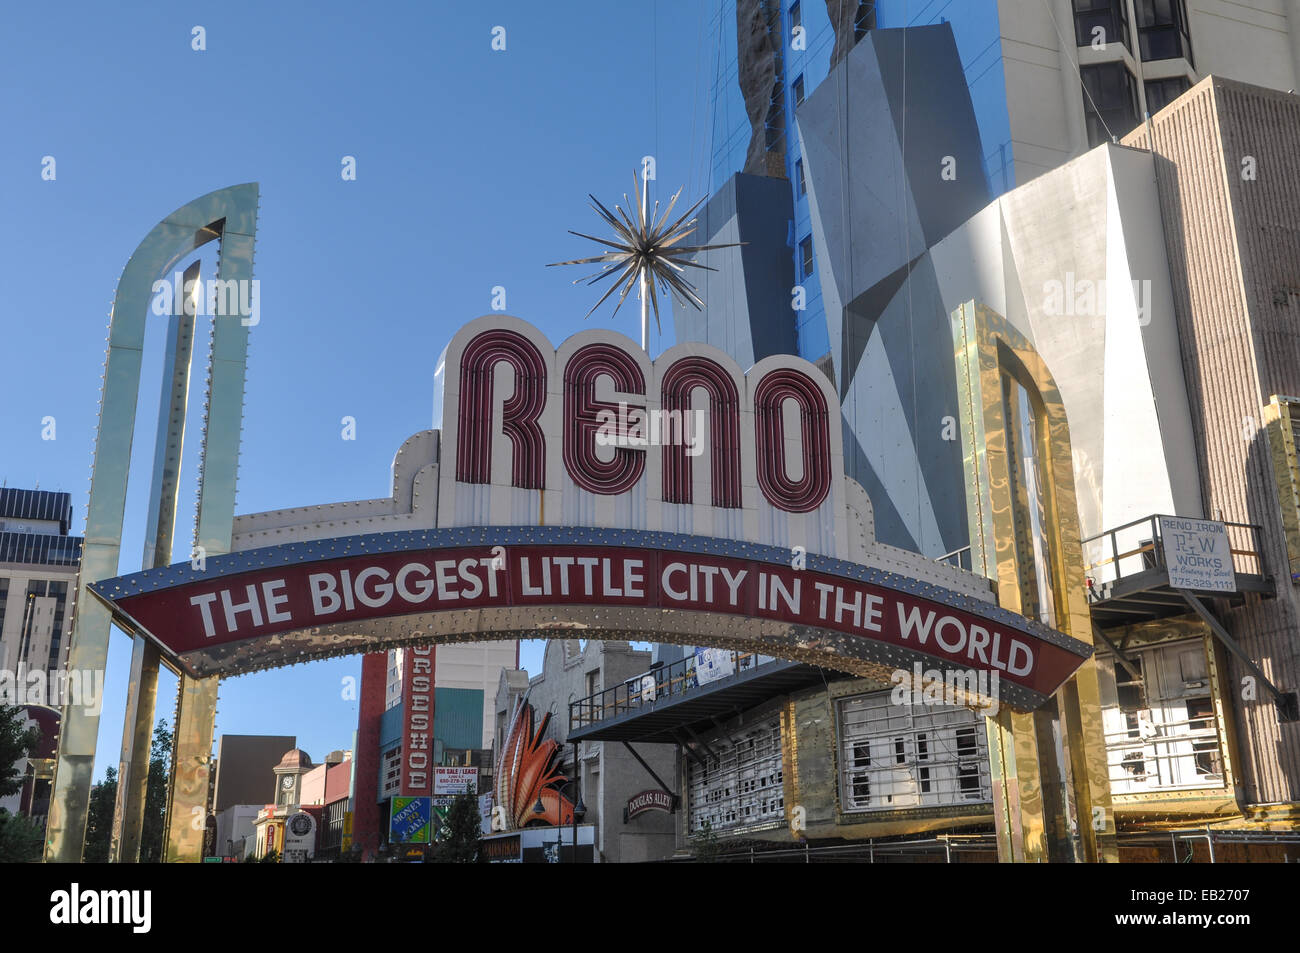 RENO - SEPTEMBER 05 : The Reno entrance sign on September 05, 2011. The original sign was built in 1926 to promote - Stock Image